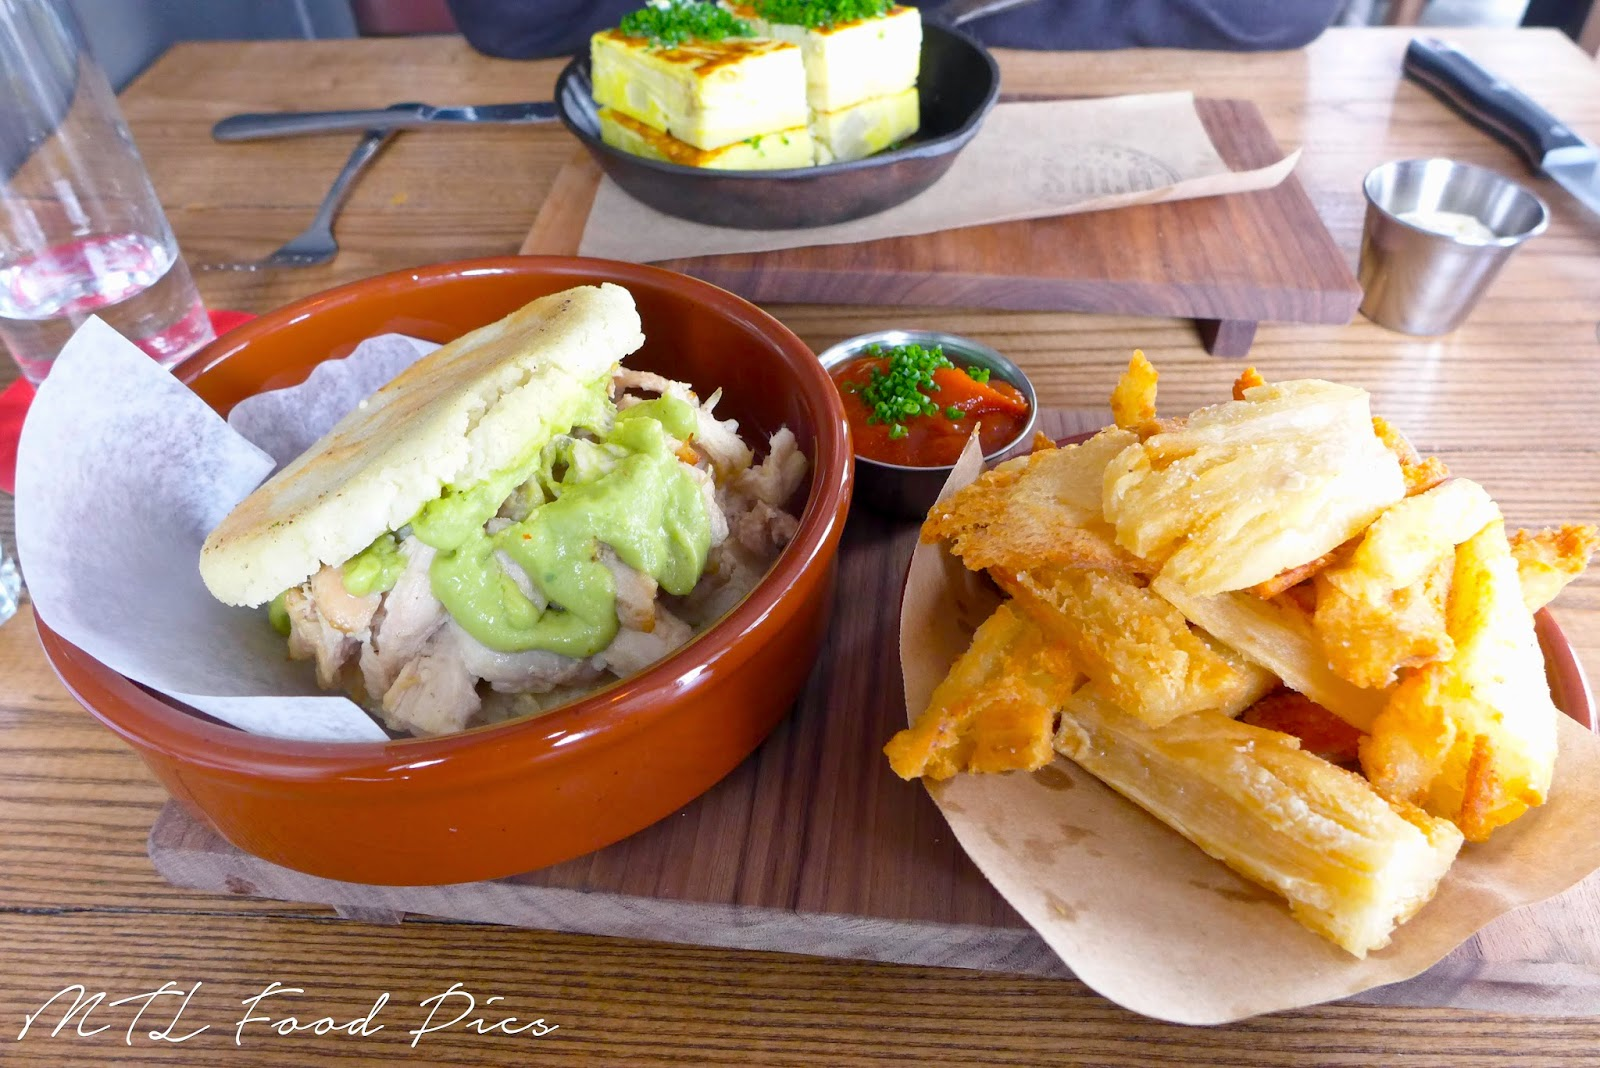 chicken avocado arepas with yuca fries - venezuelan cuisine